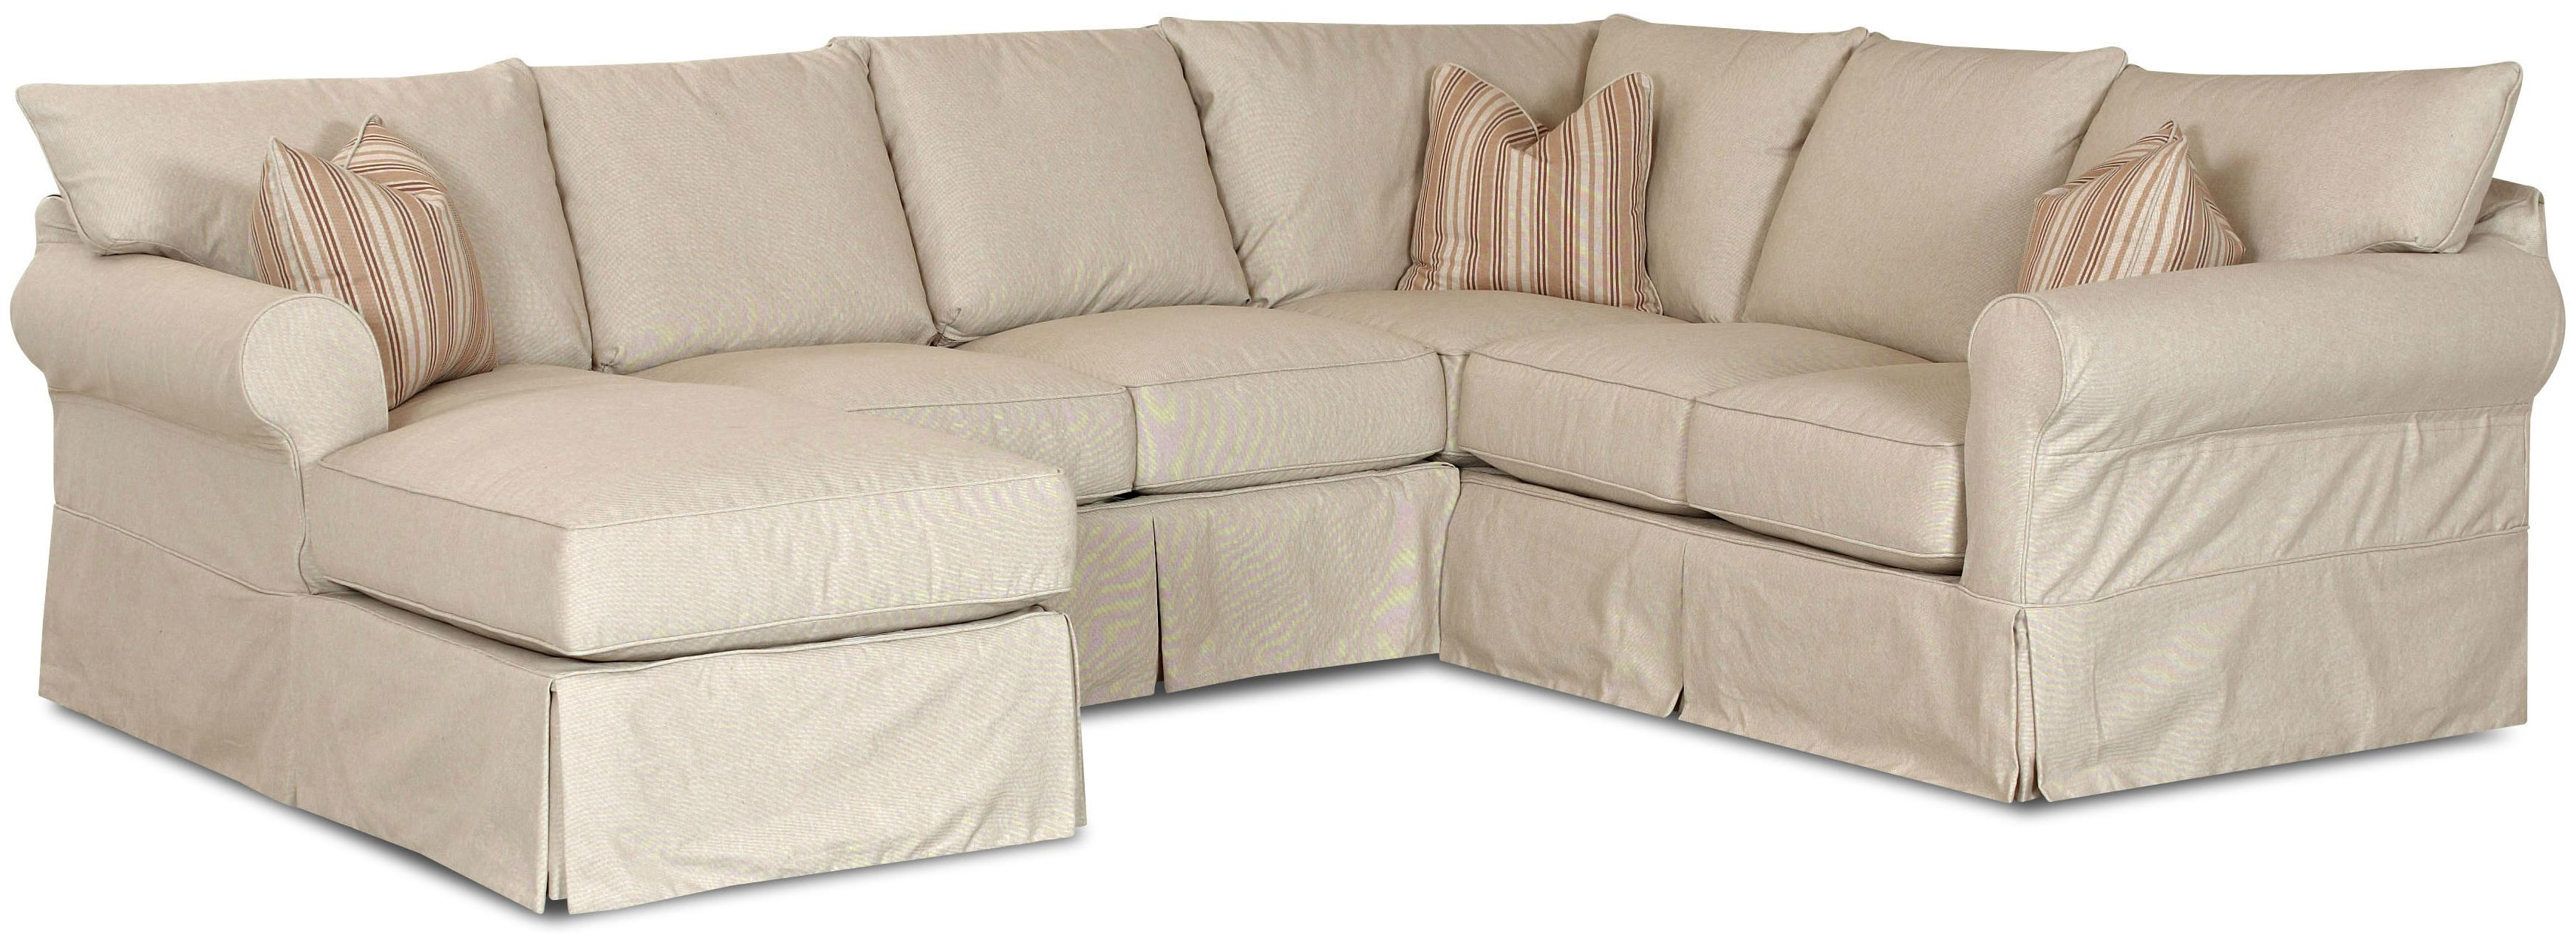 left walnut sectional chaise maier with value piece products number benchcraft item sectionals